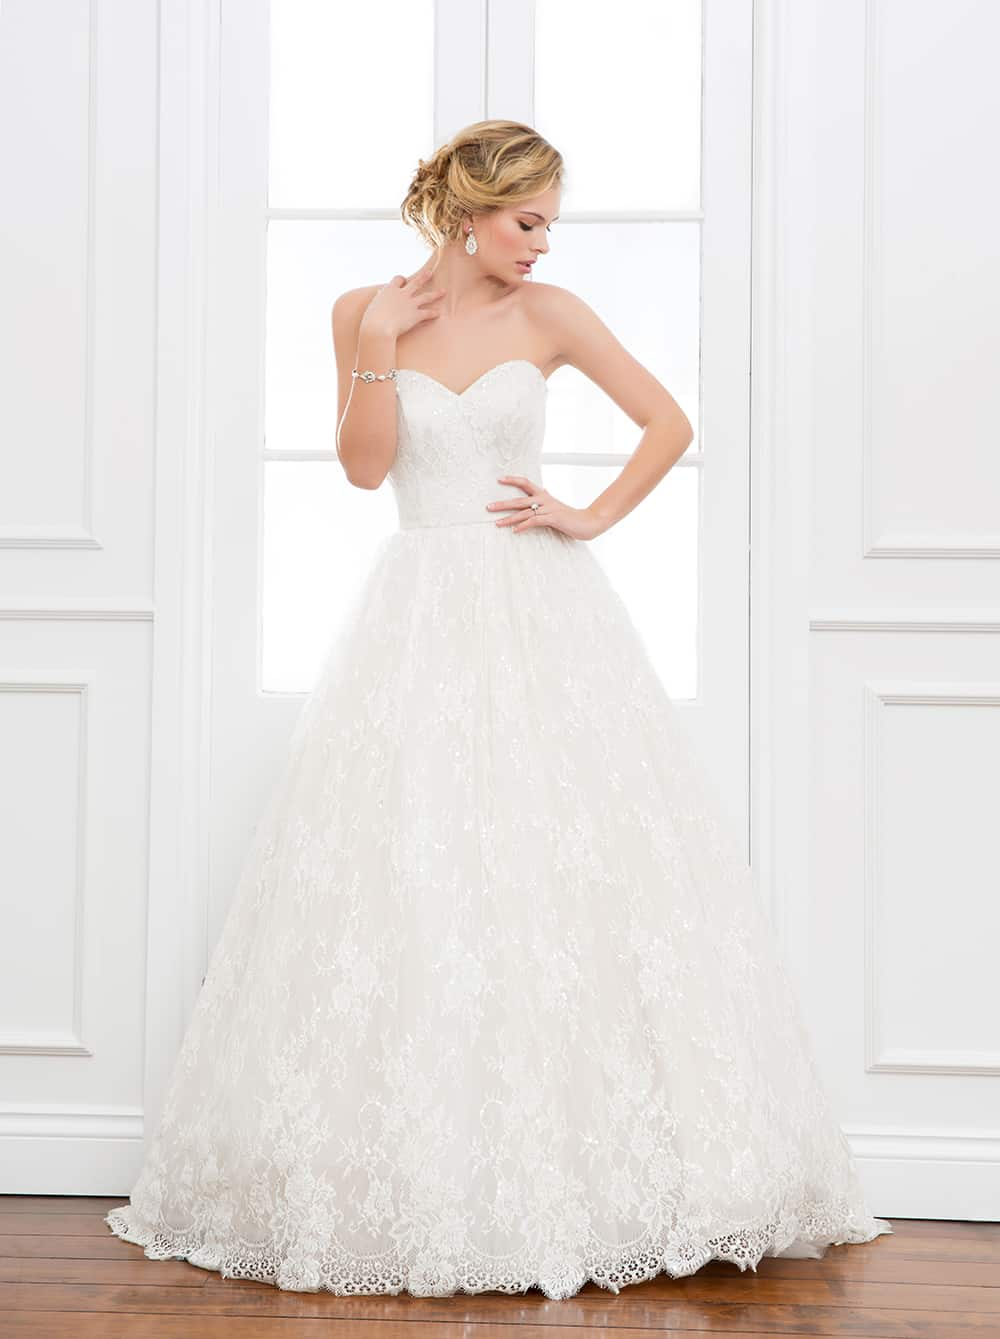 The Melita wedding gown with lace bodice in skirt from Wendy Makin Couture.